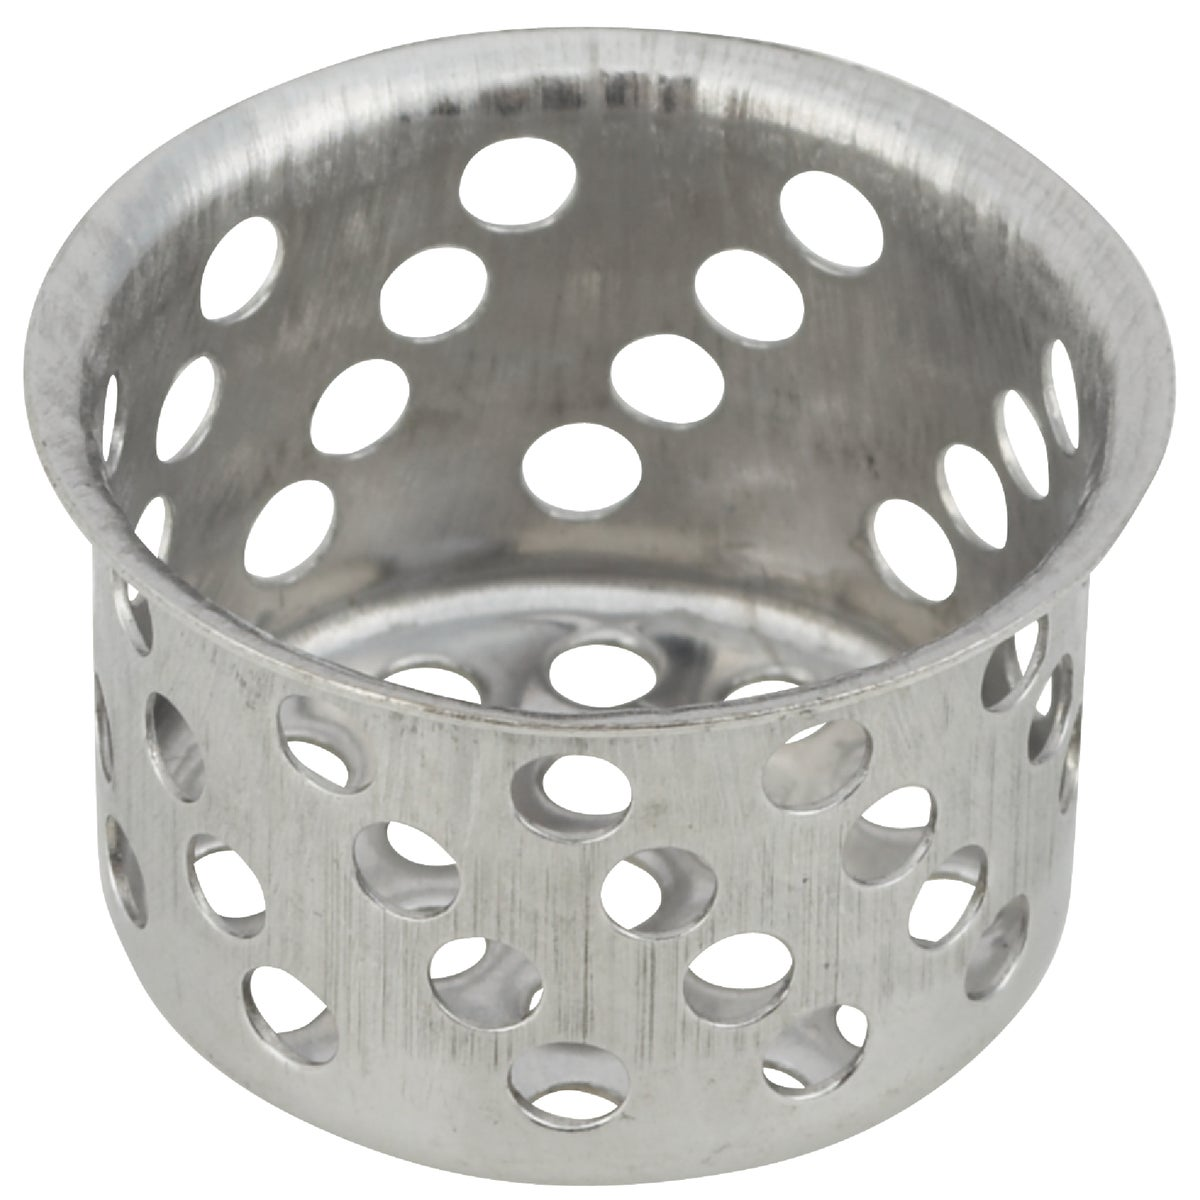 "1"" STRAINER CUP - 415633 by Do it Best"